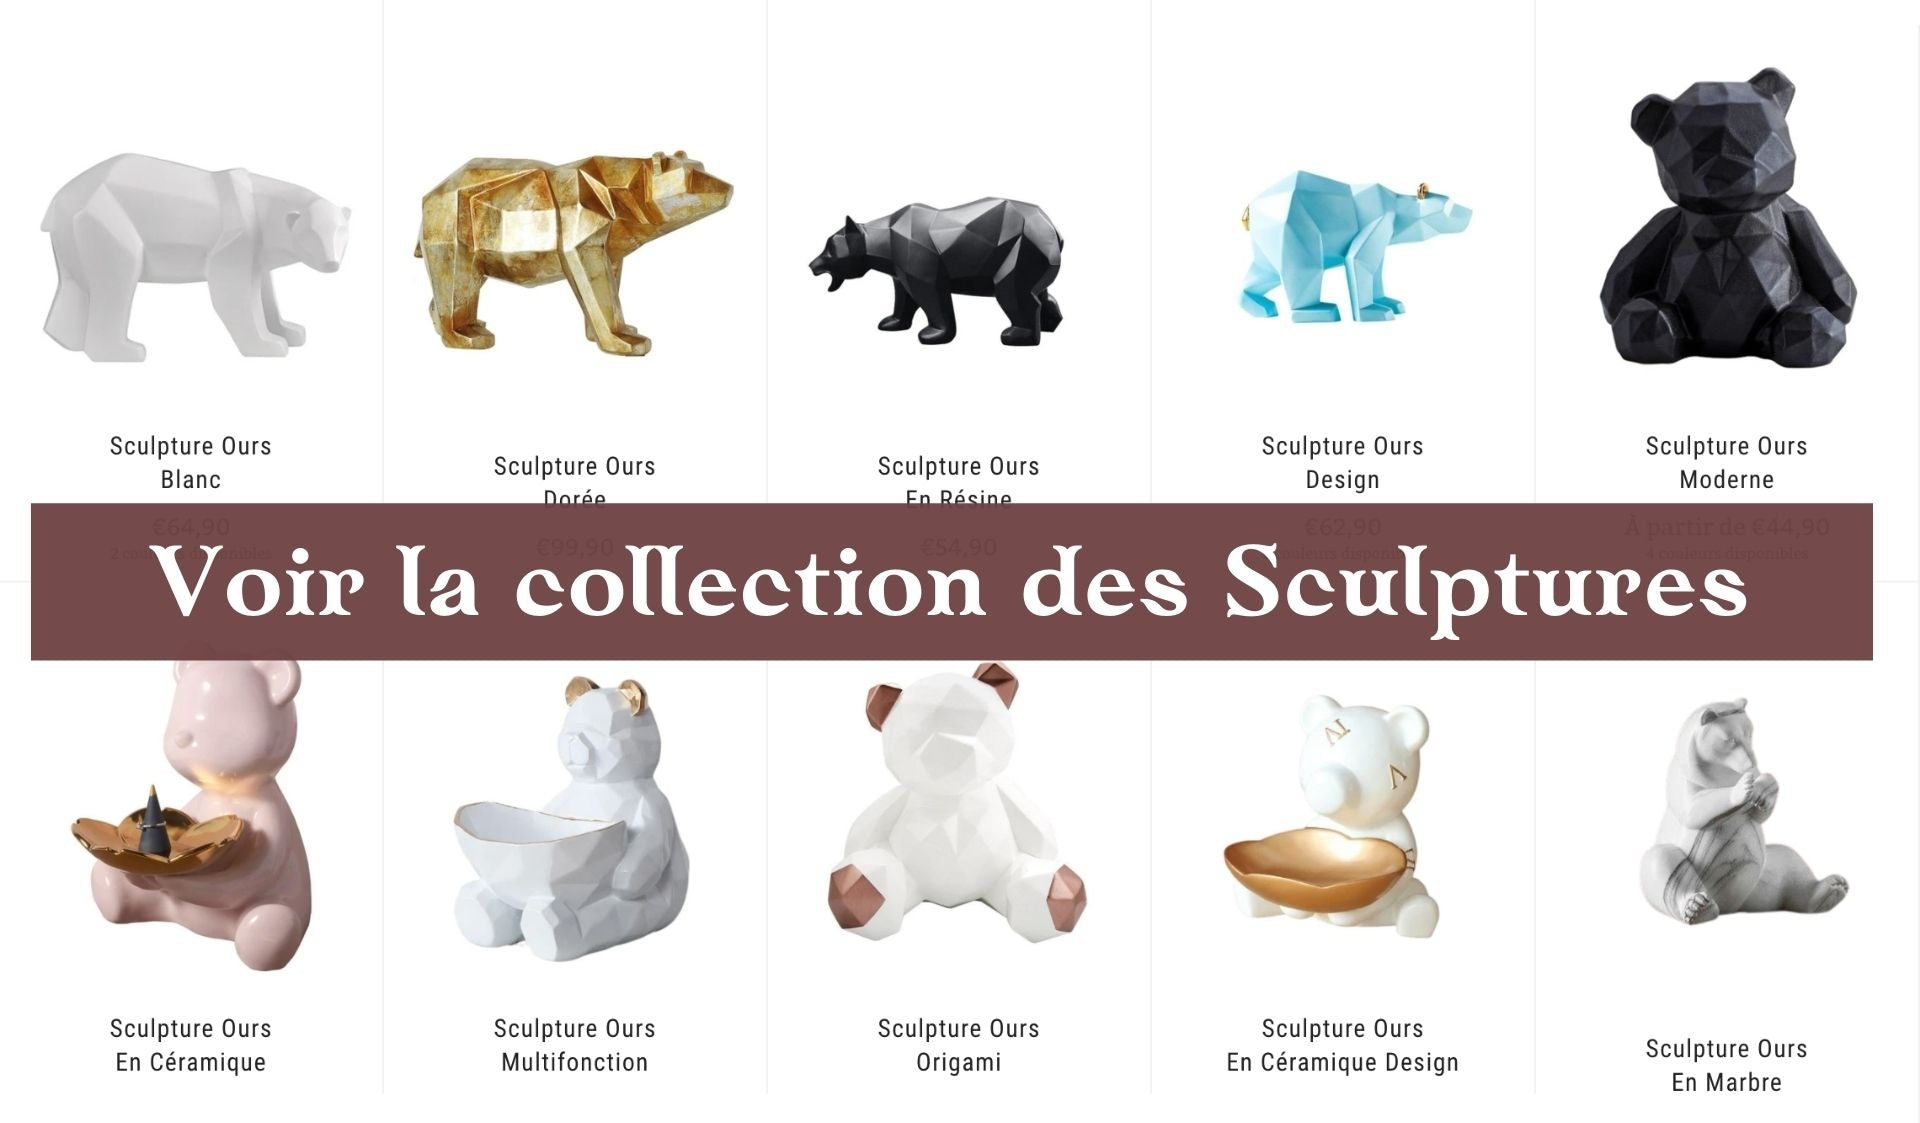 Sculptures Ours